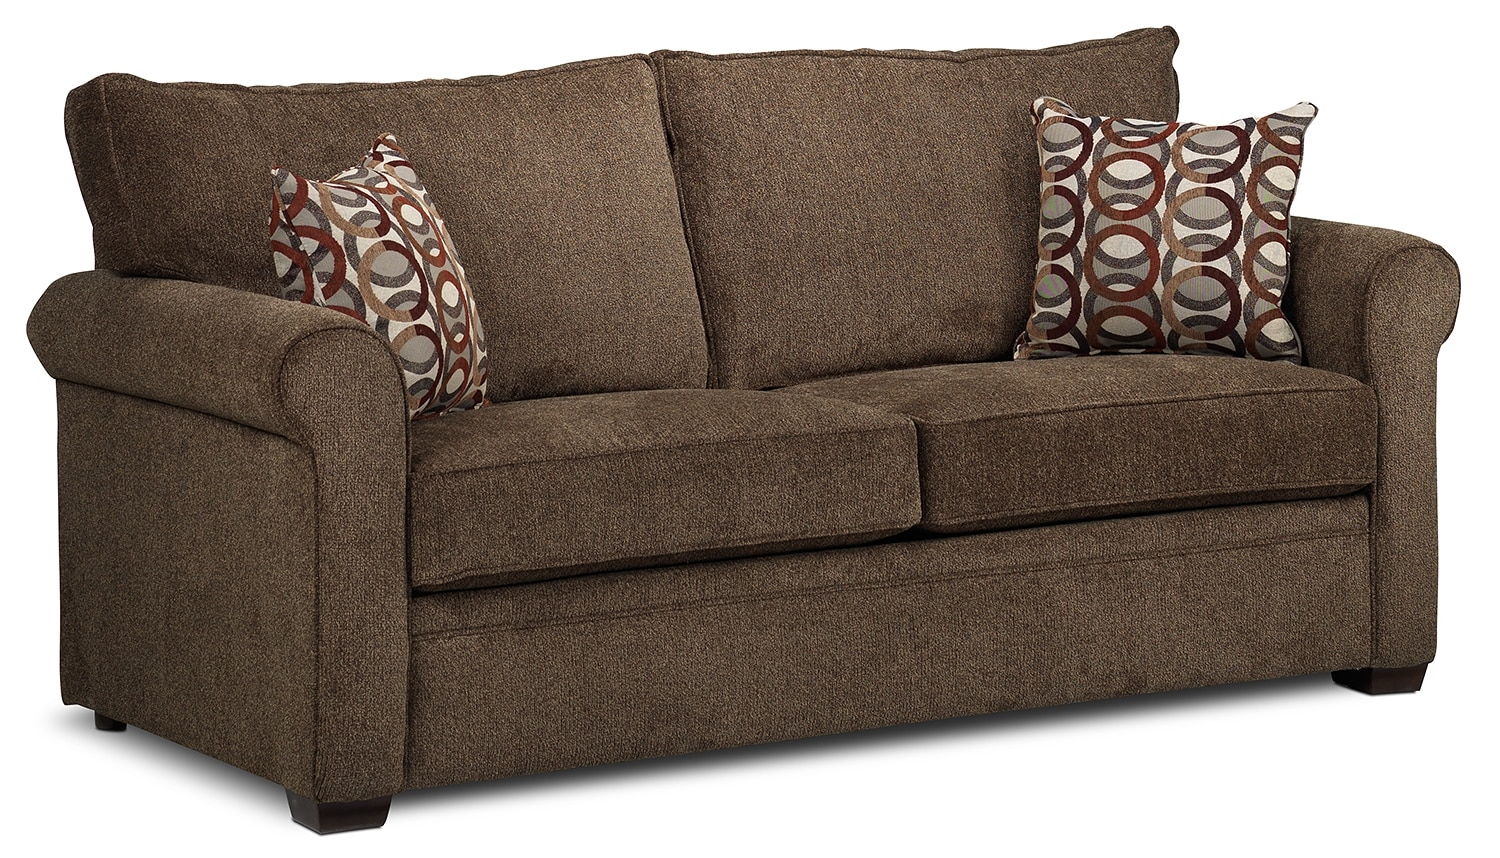 Ithaca Queen Sofabed - Cocoa